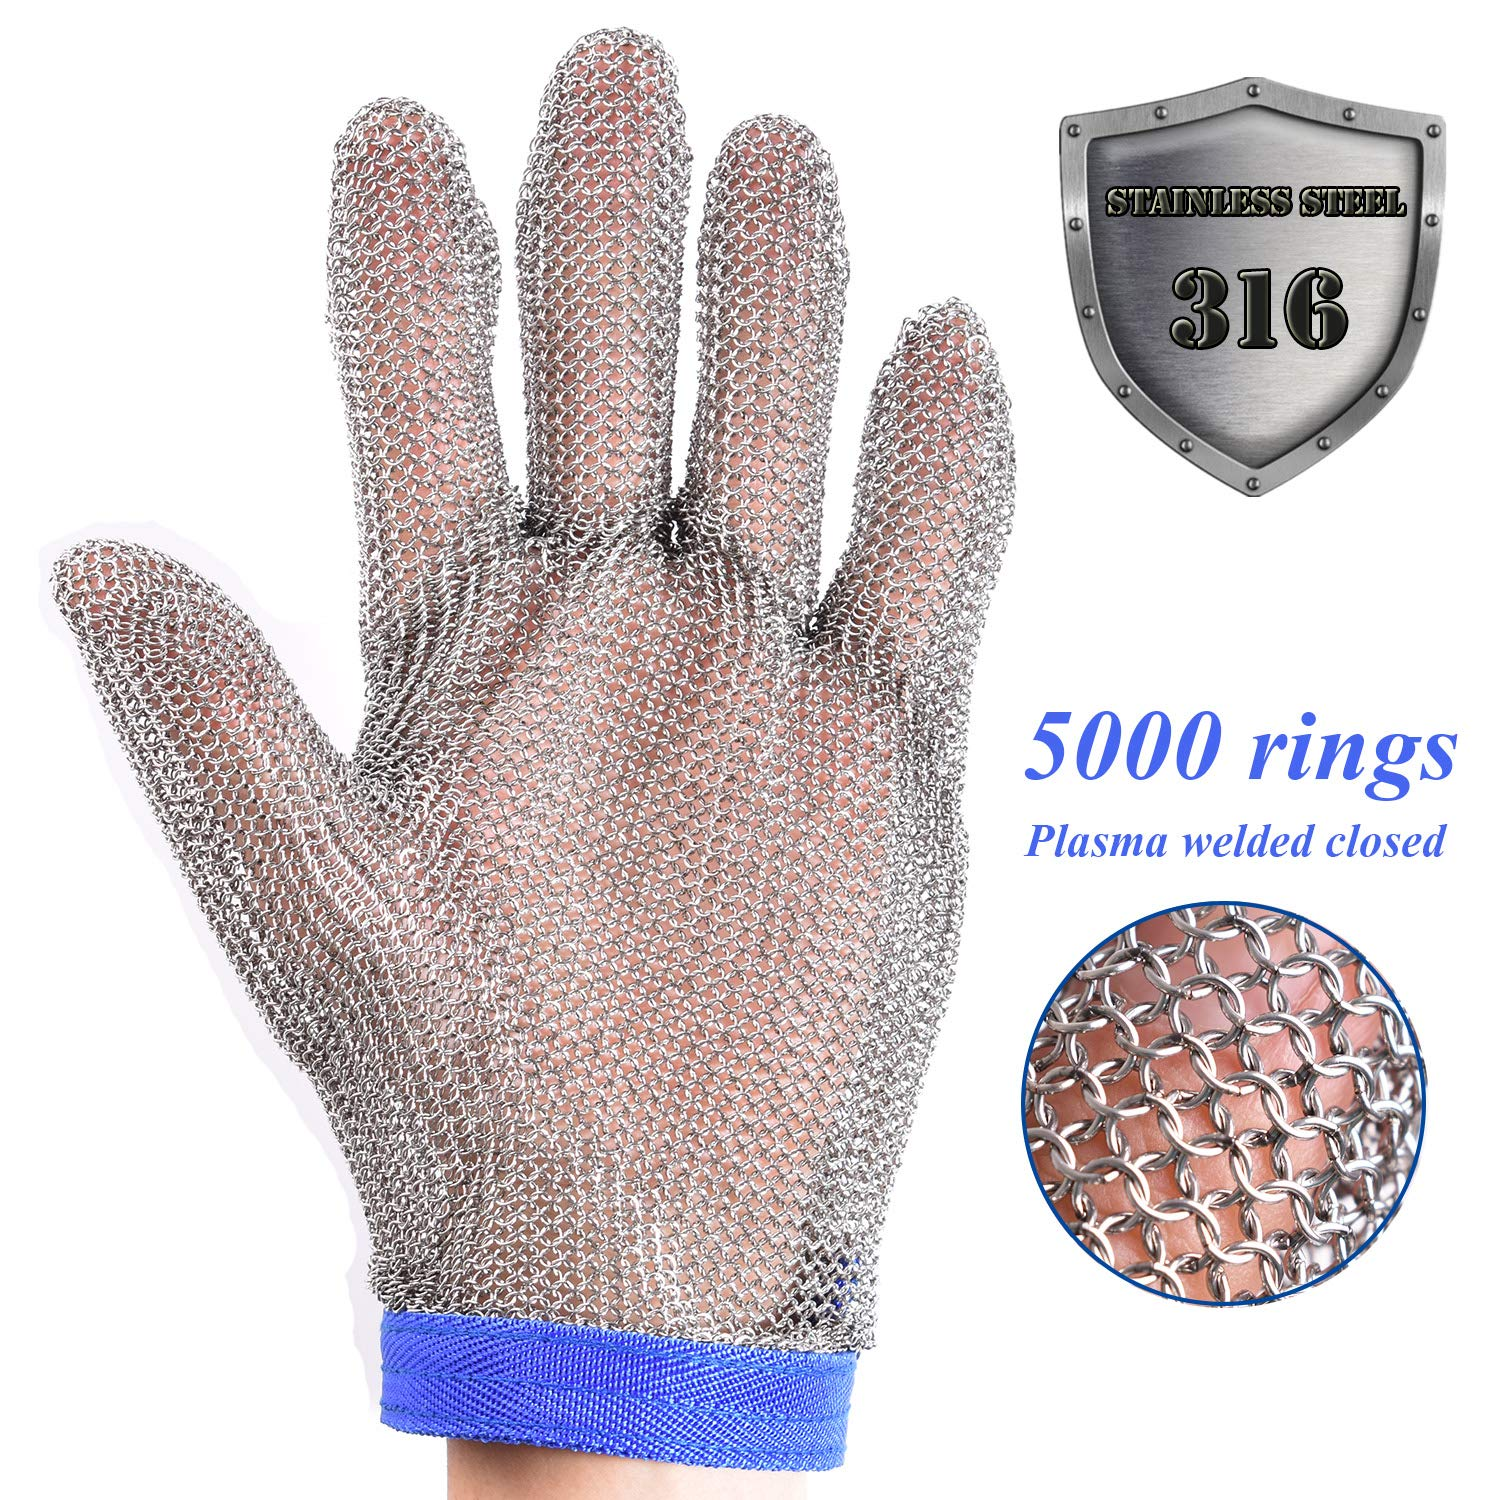 Stainless Steel Mesh Cut-resistant Glove - Chain Mail Glove for Hand Protective, Safety Glove for Home Kitchen, Butcher, Oyster, Garment. Fish Worker (Large) by HANDSAFETY (Image #2)